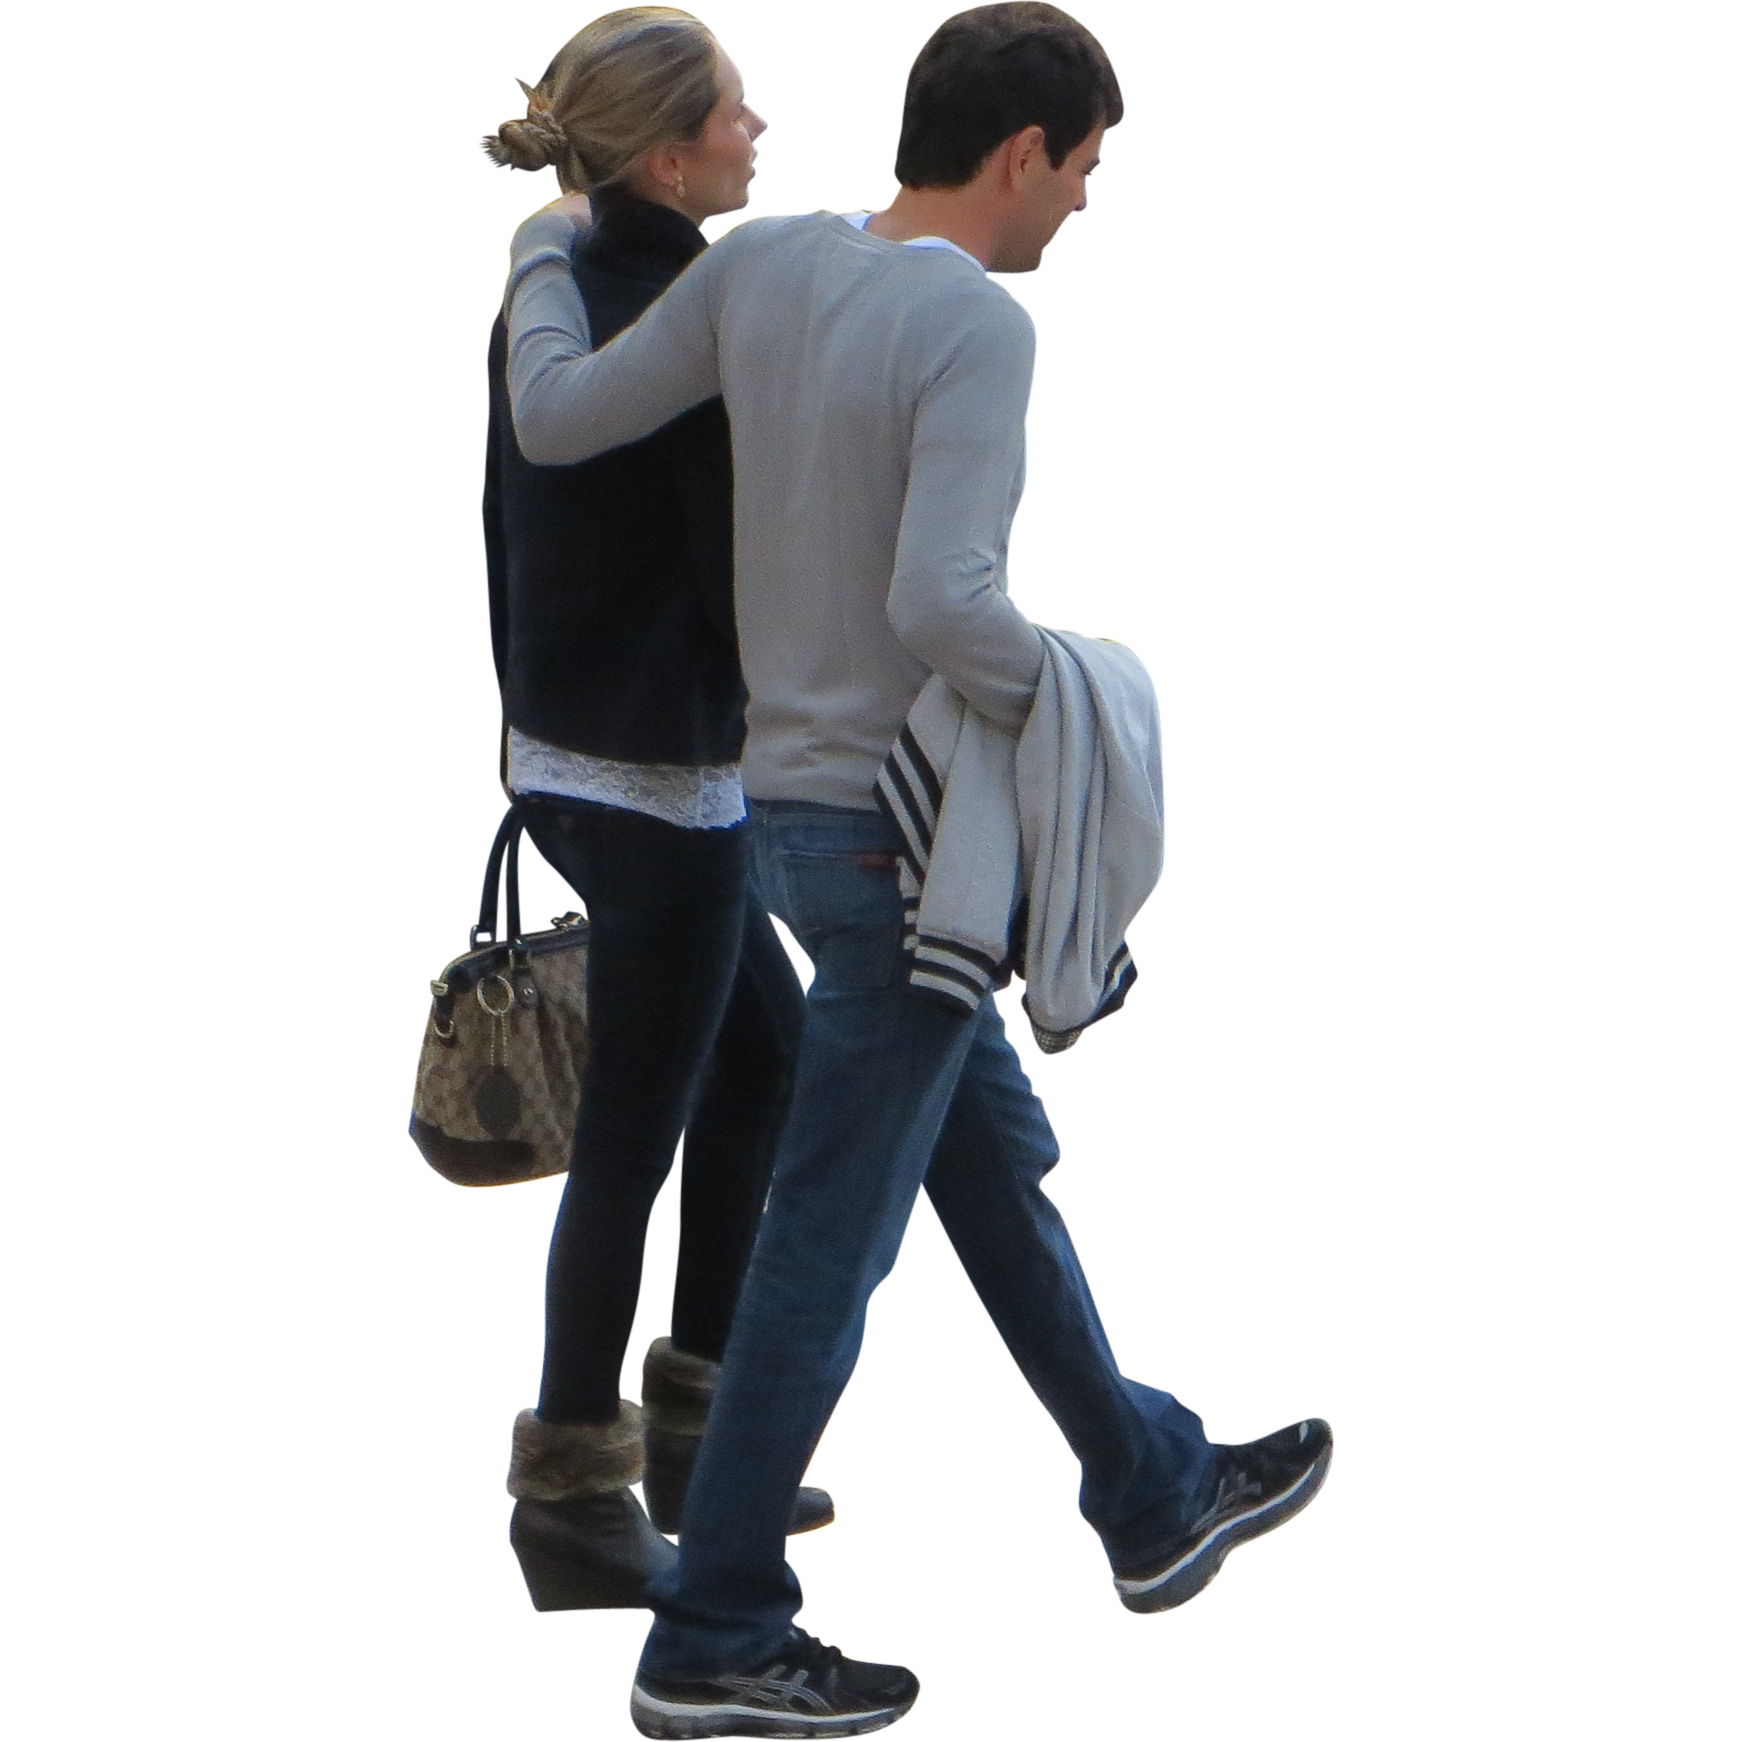 Walking Couple People Png image #32494